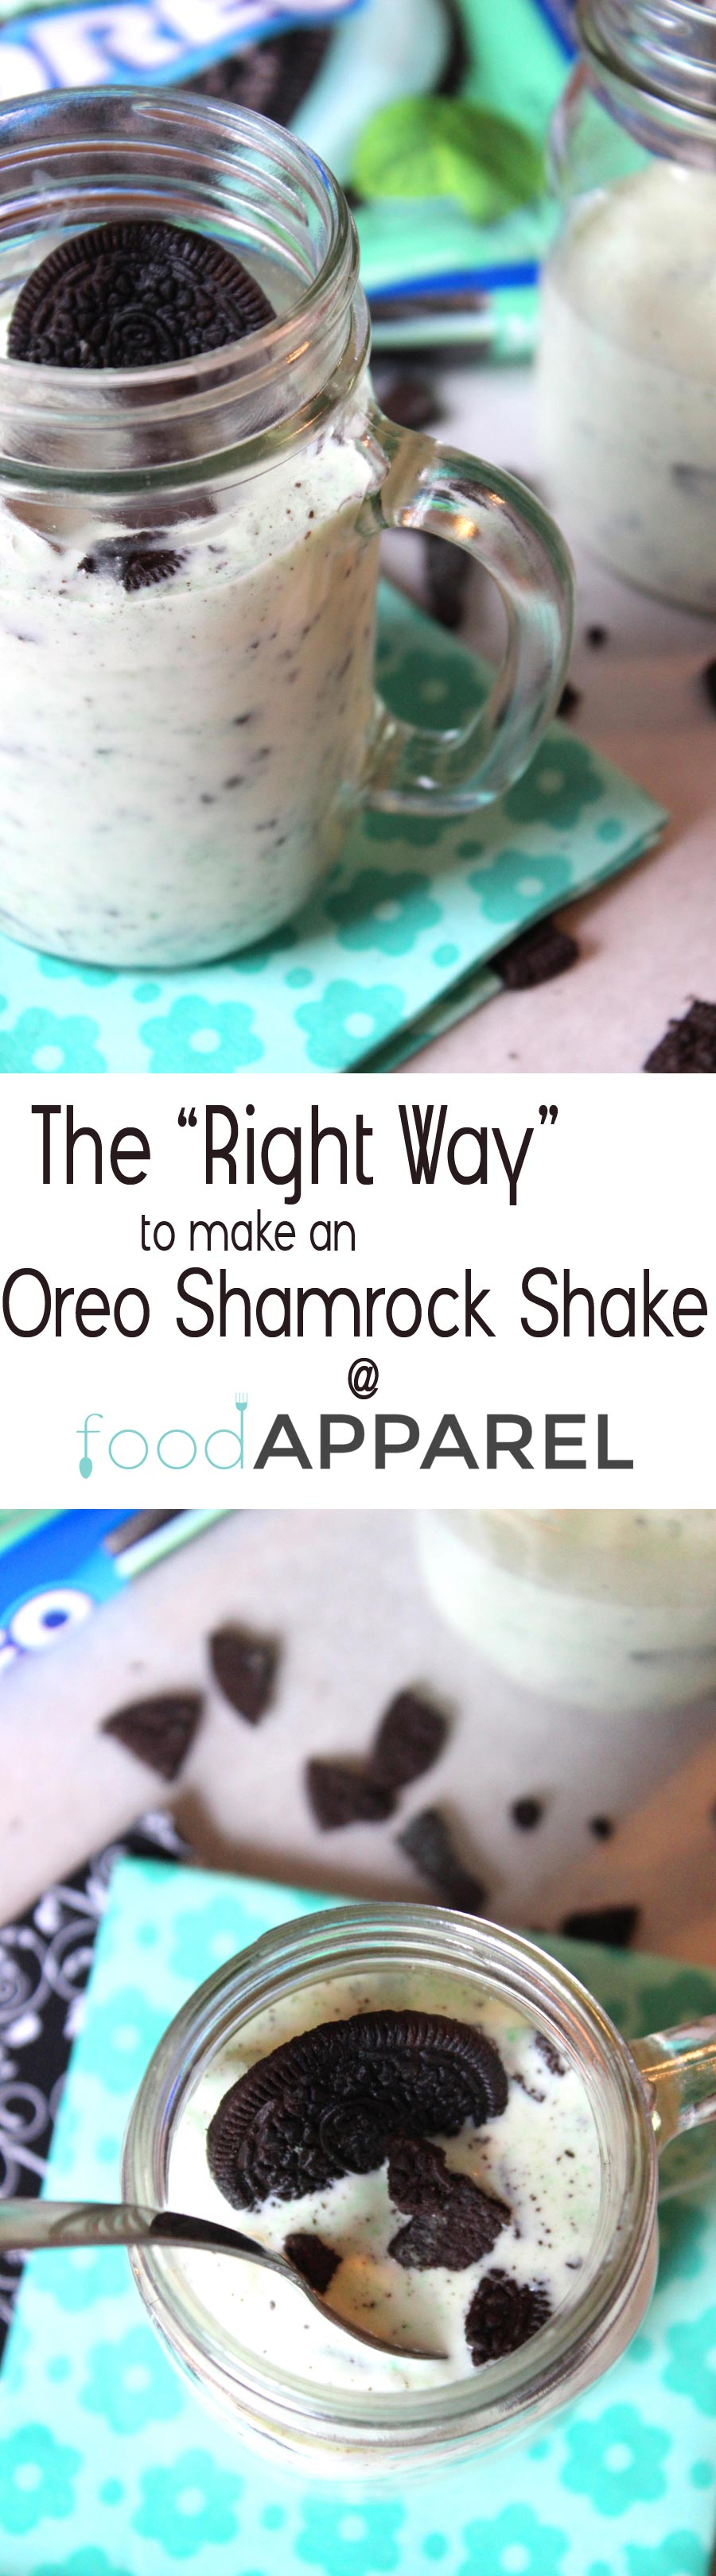 """The """"Right Way"""" to make an Oreo Shamrock Shake! A couple of quick tips to make your shake rock your world!"""